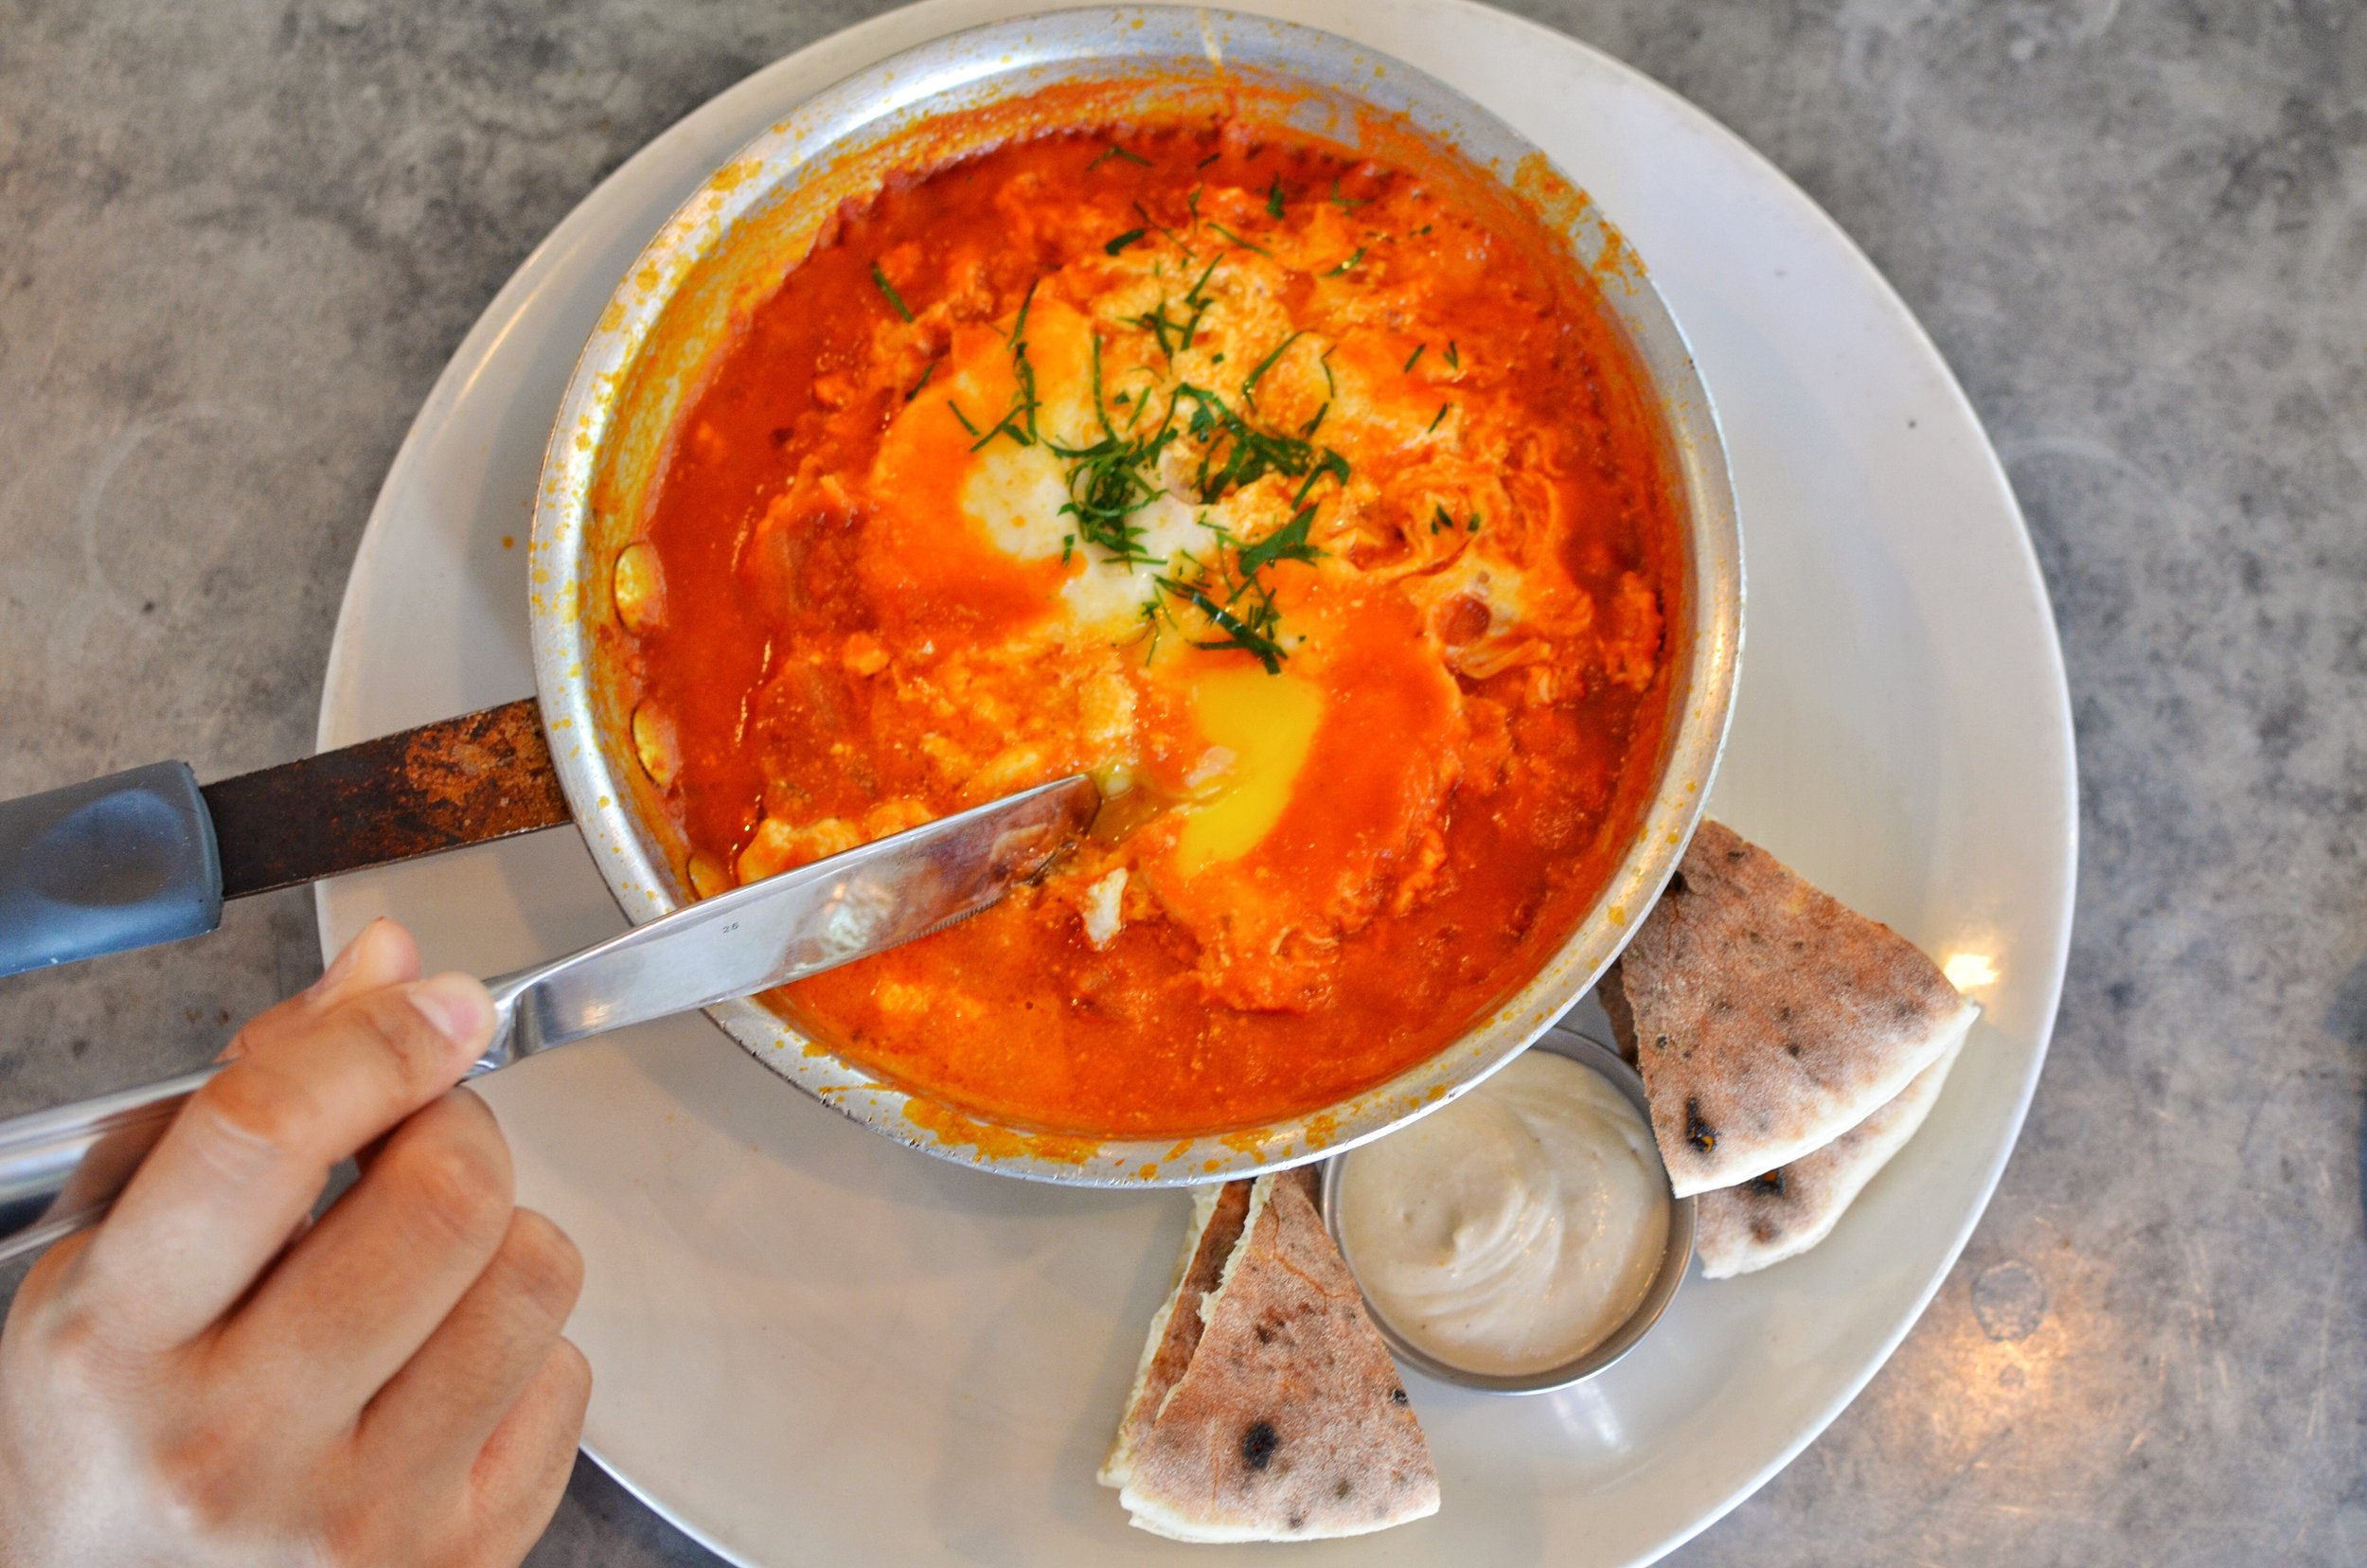 Shakshuka- Baked eggs and a spicy tomato onion sauce, tahini